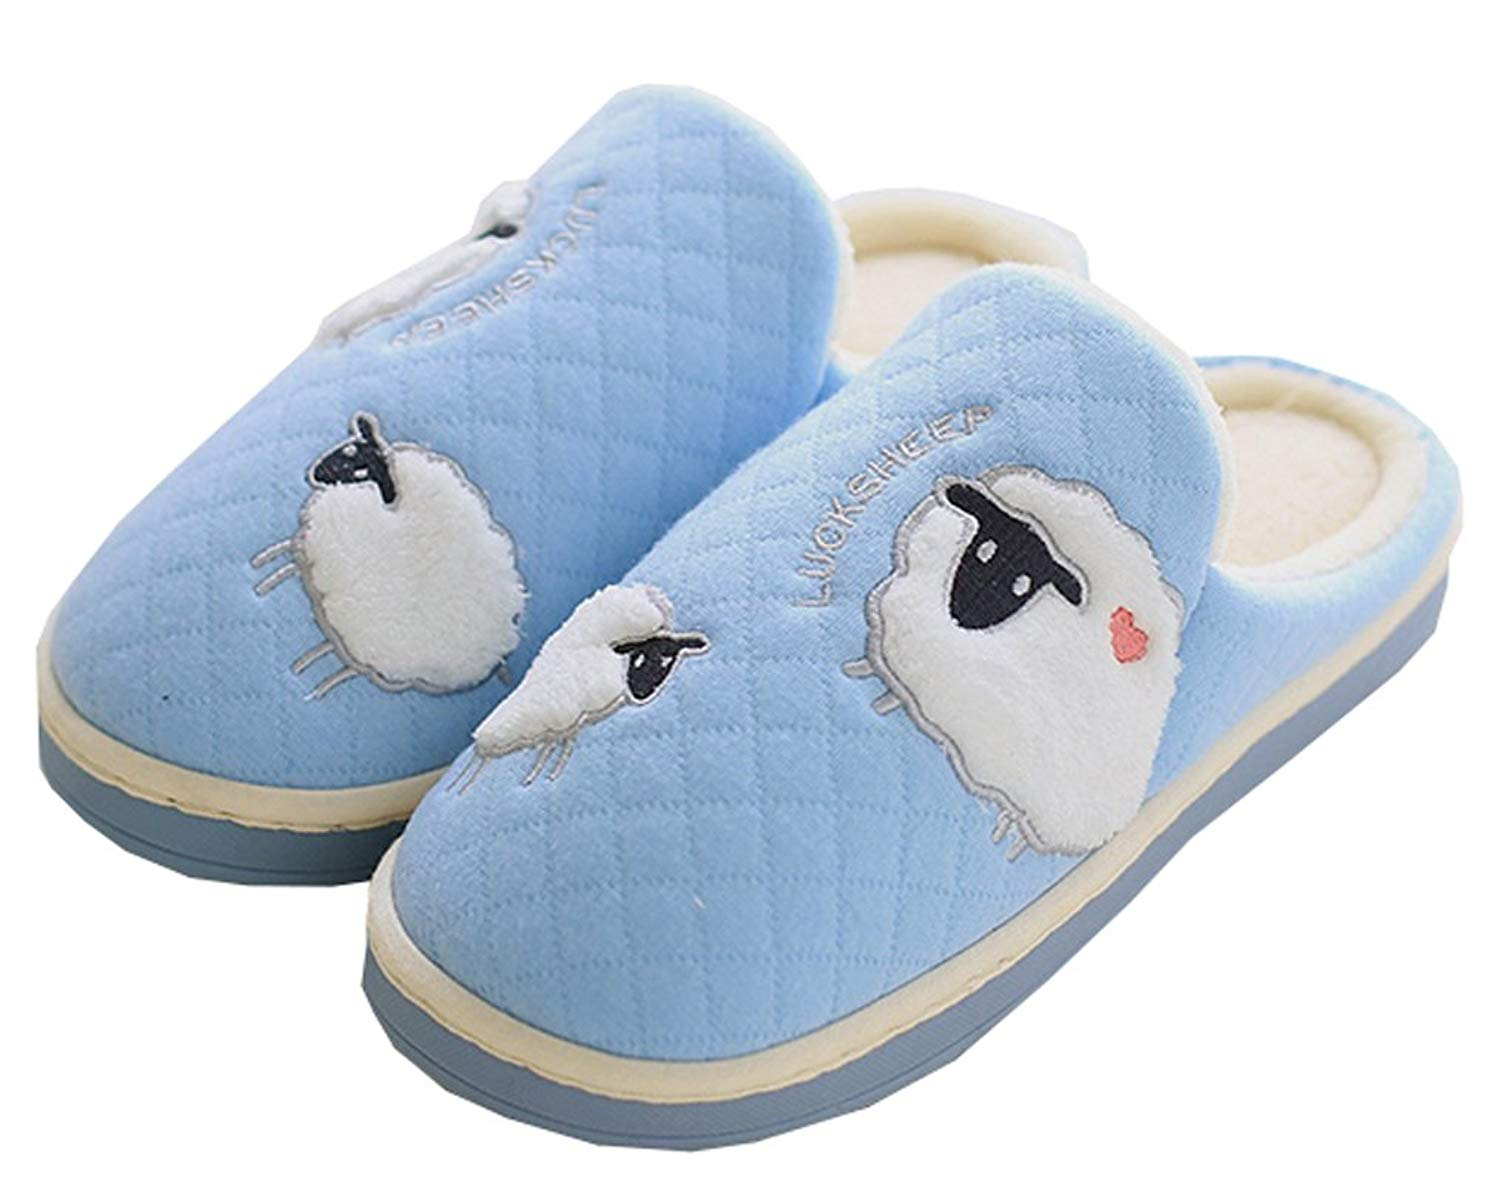 fe2b4c8f47e Get Quotations · Blubi Womens Sheep Cotton Warm Thick Sole Slippers  Skid-Proof Indoor Slippers